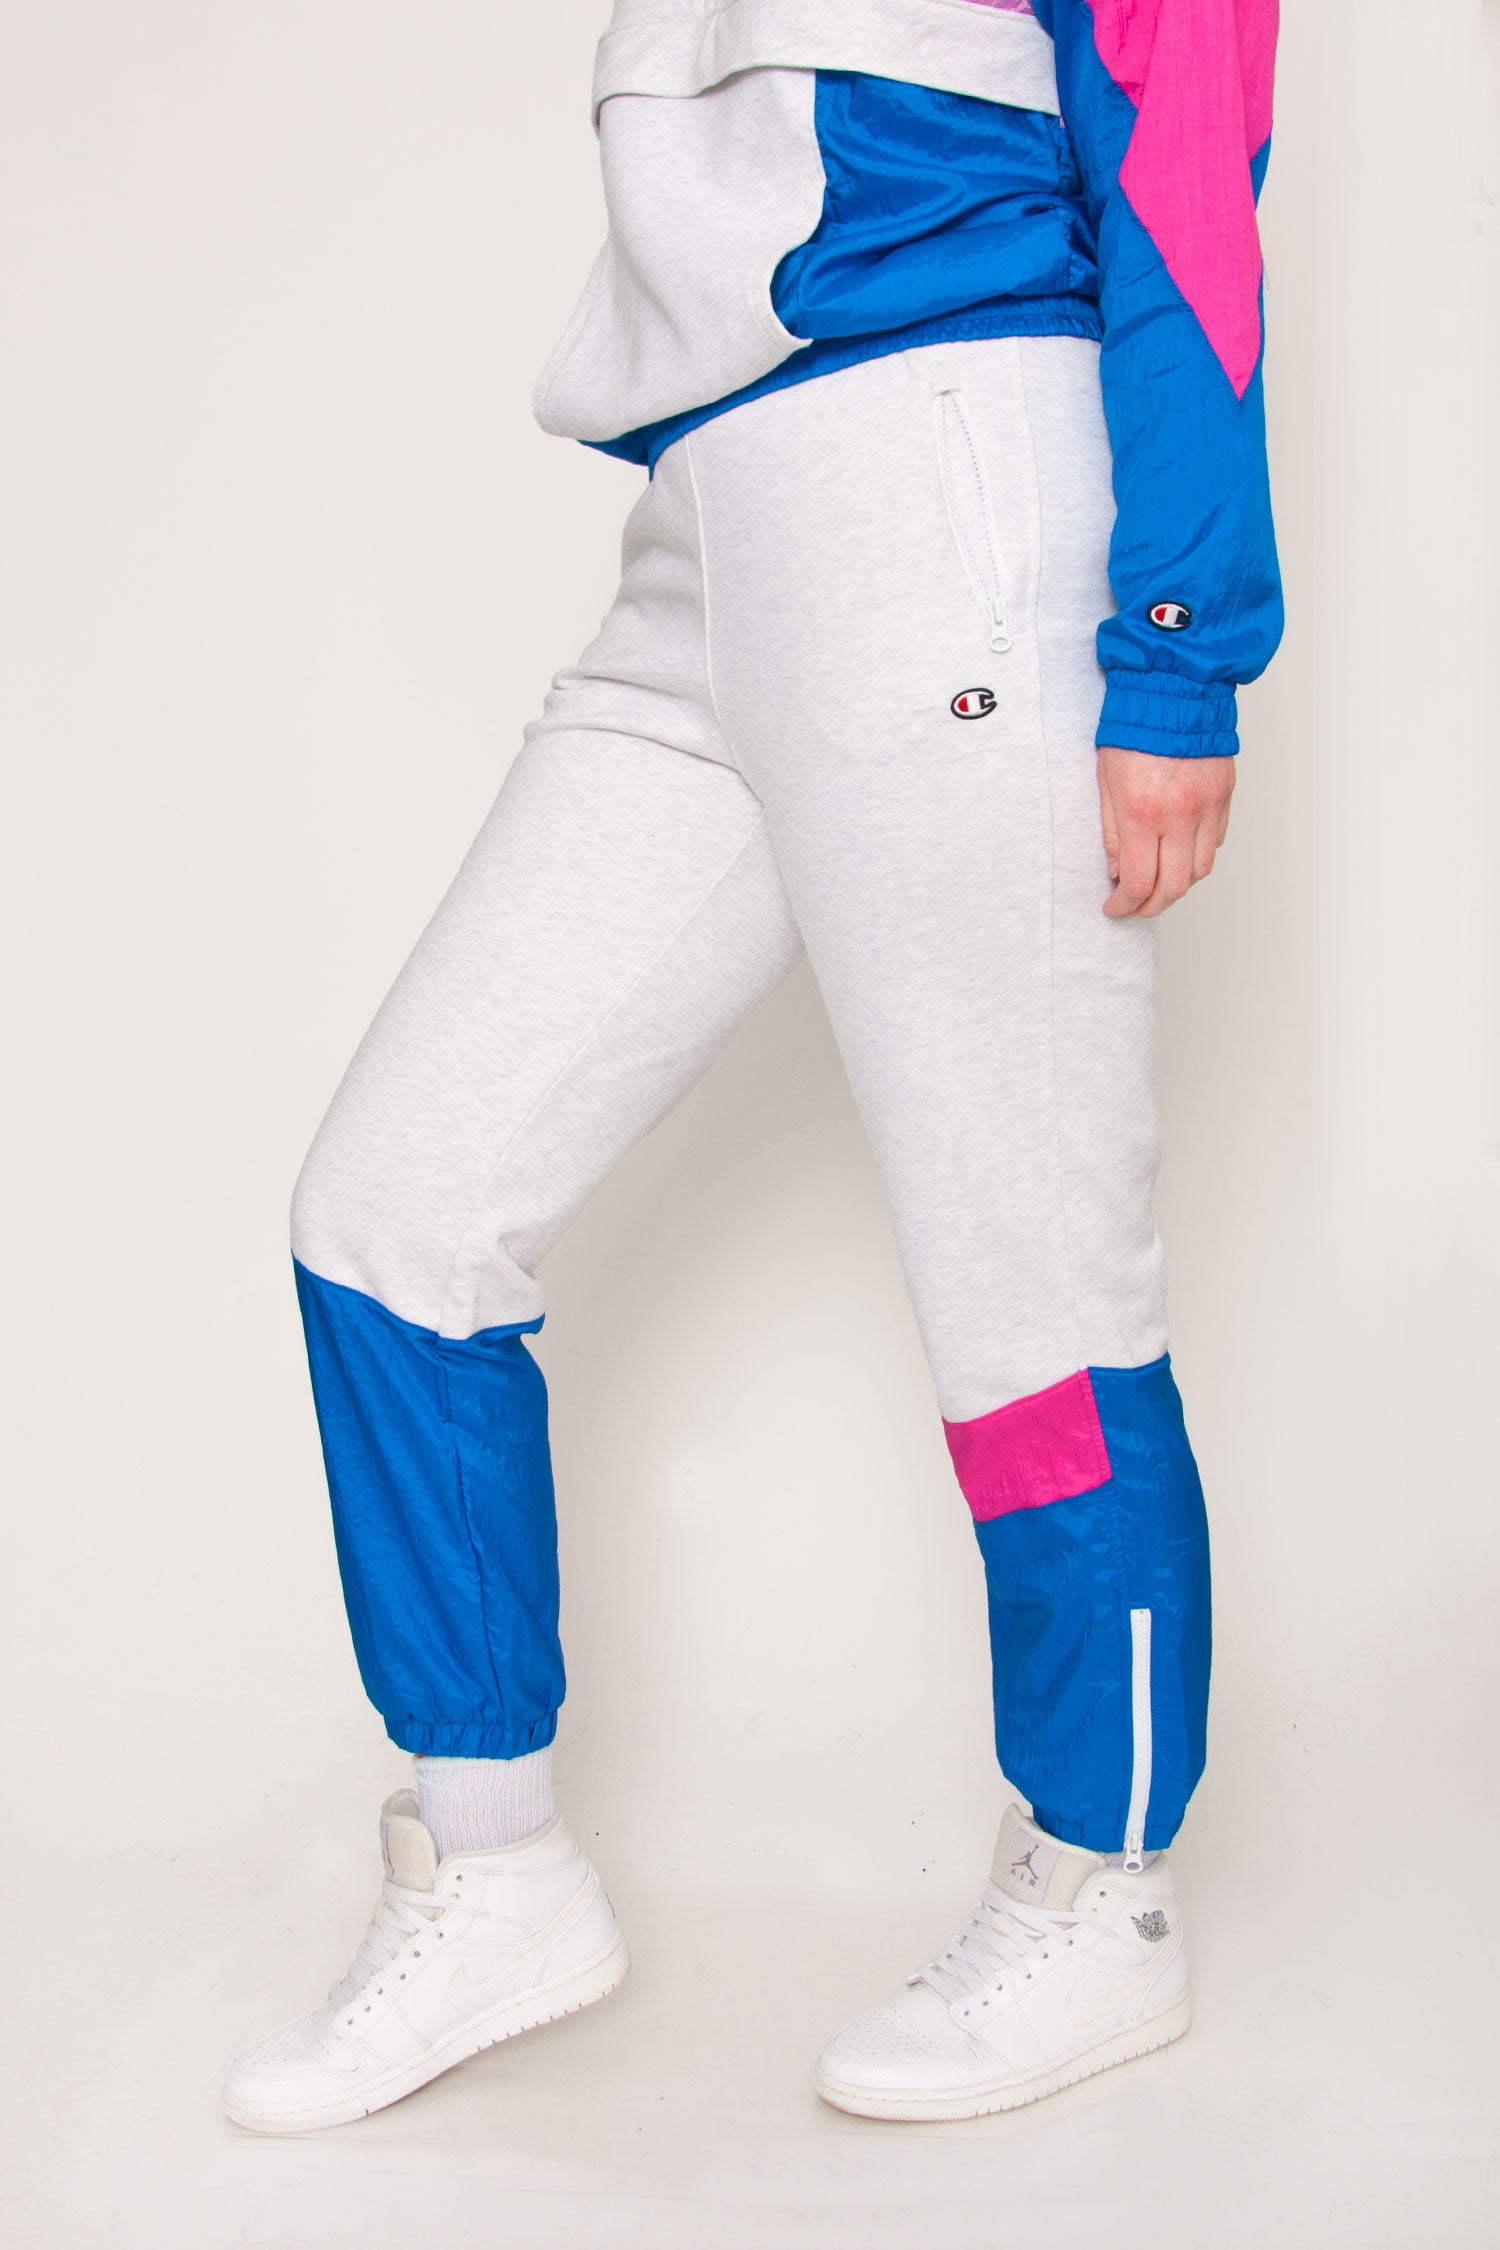 Champion Mixed Media Sweatpants - Pink/Blue